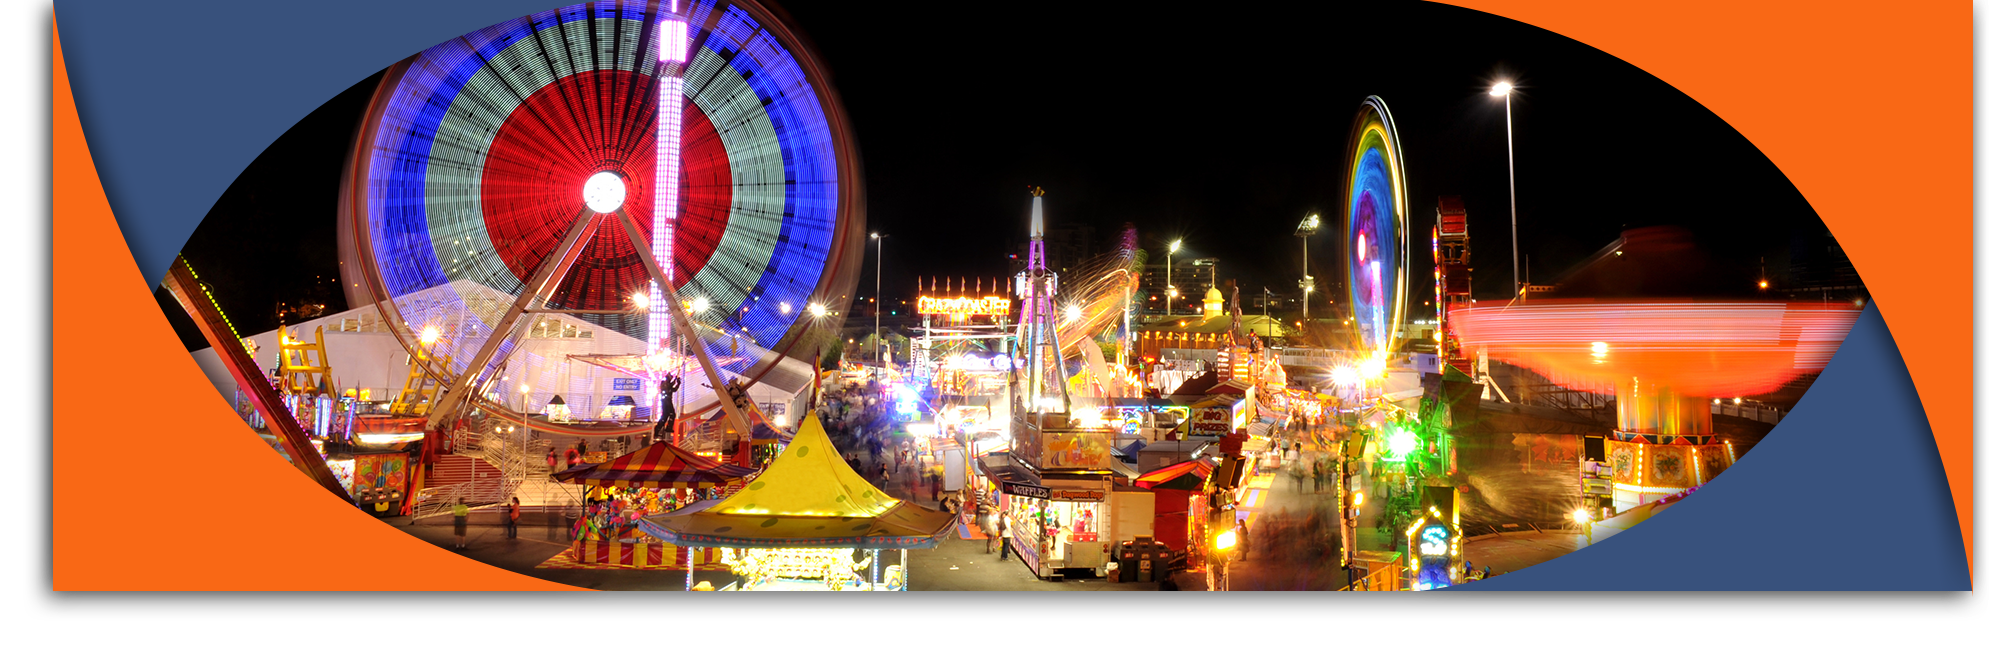 carnival at night